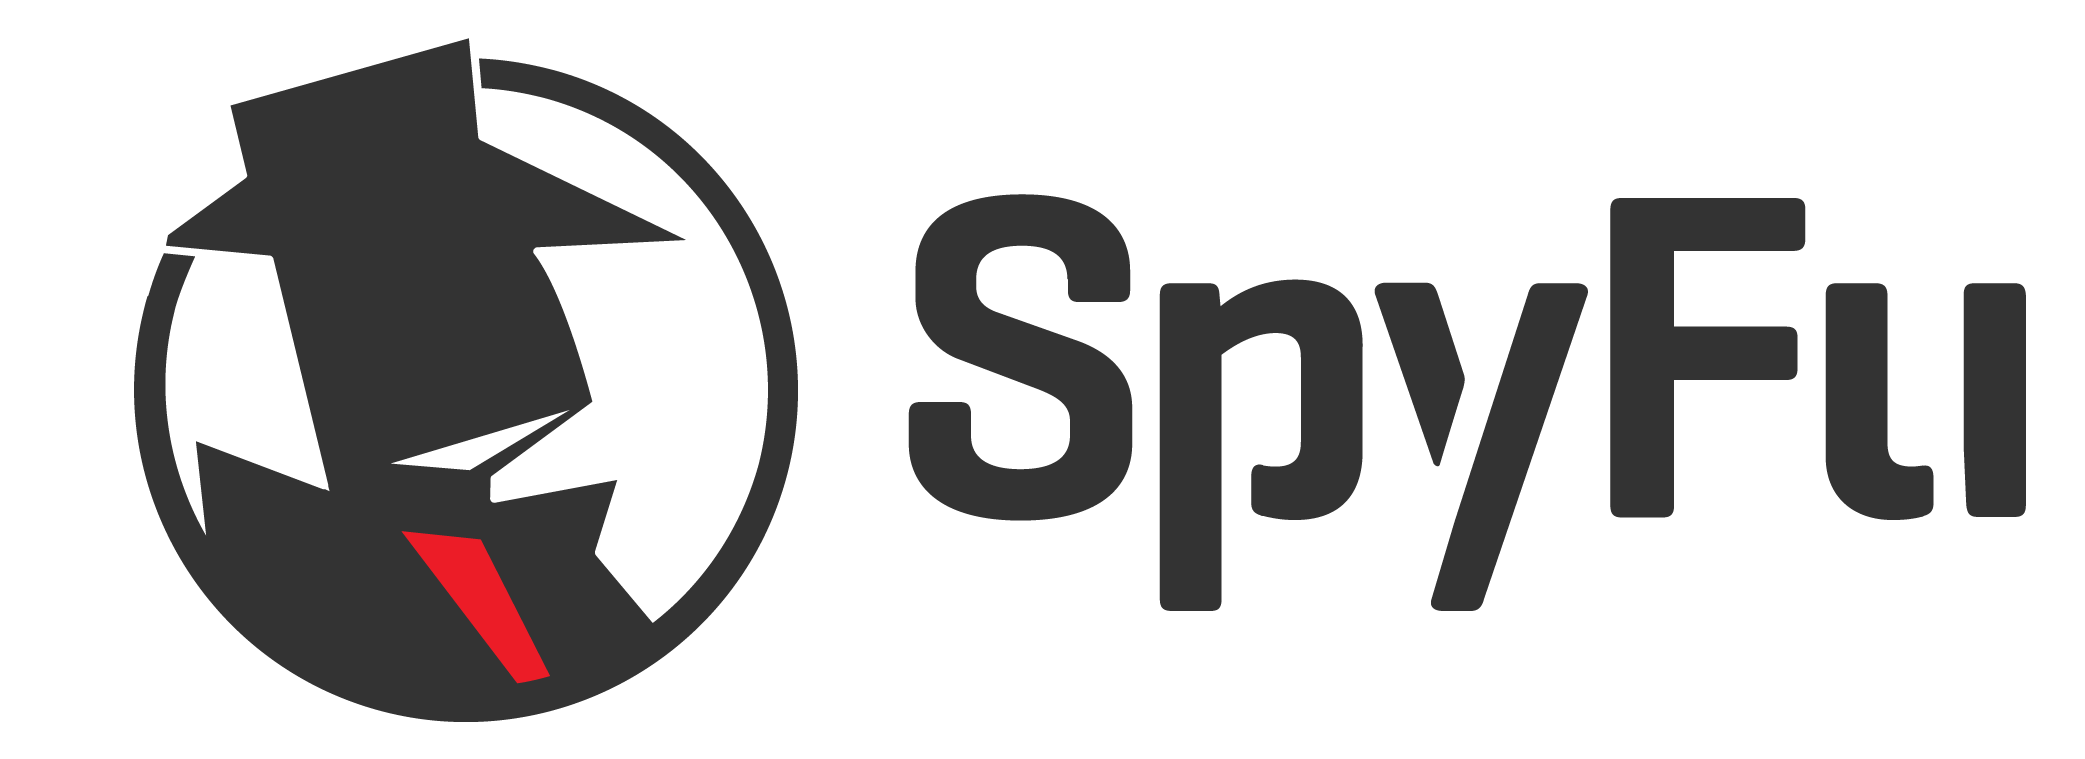 SpyFu Coupon Code